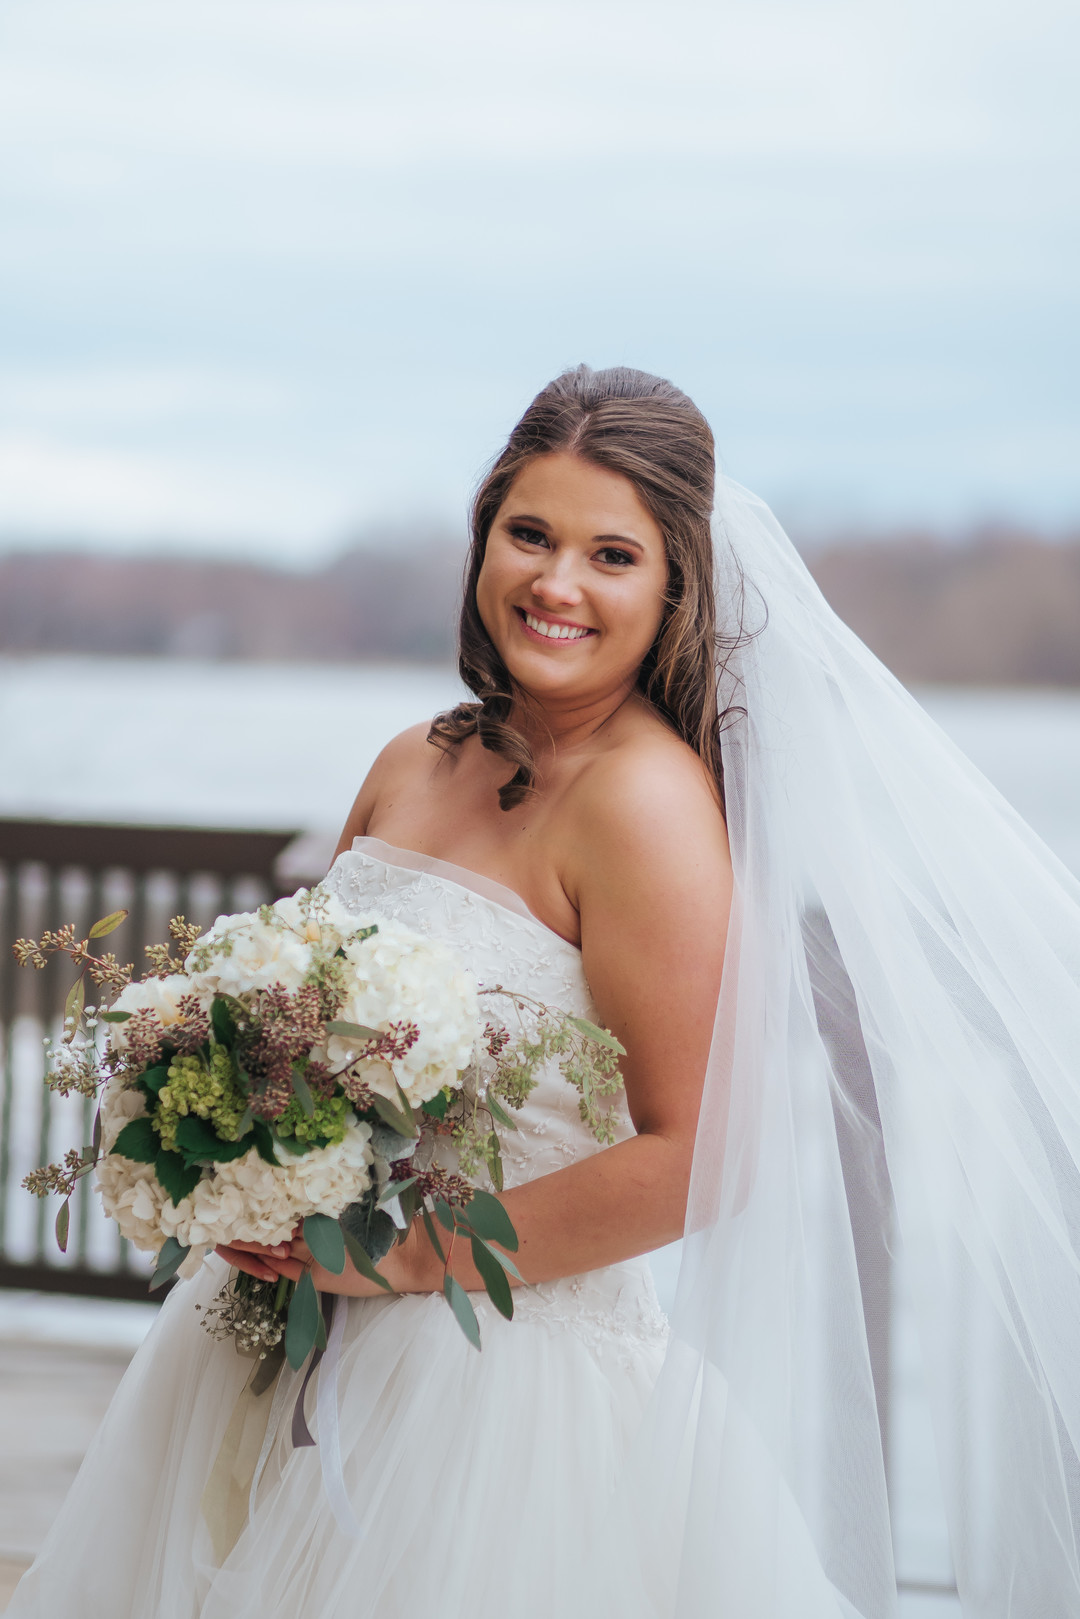 Bridal portrait: Beautiful Illinois wedding at Riverside Receptions captured by Windy City Production. See more wedding ideas at CHItheeWED.com!